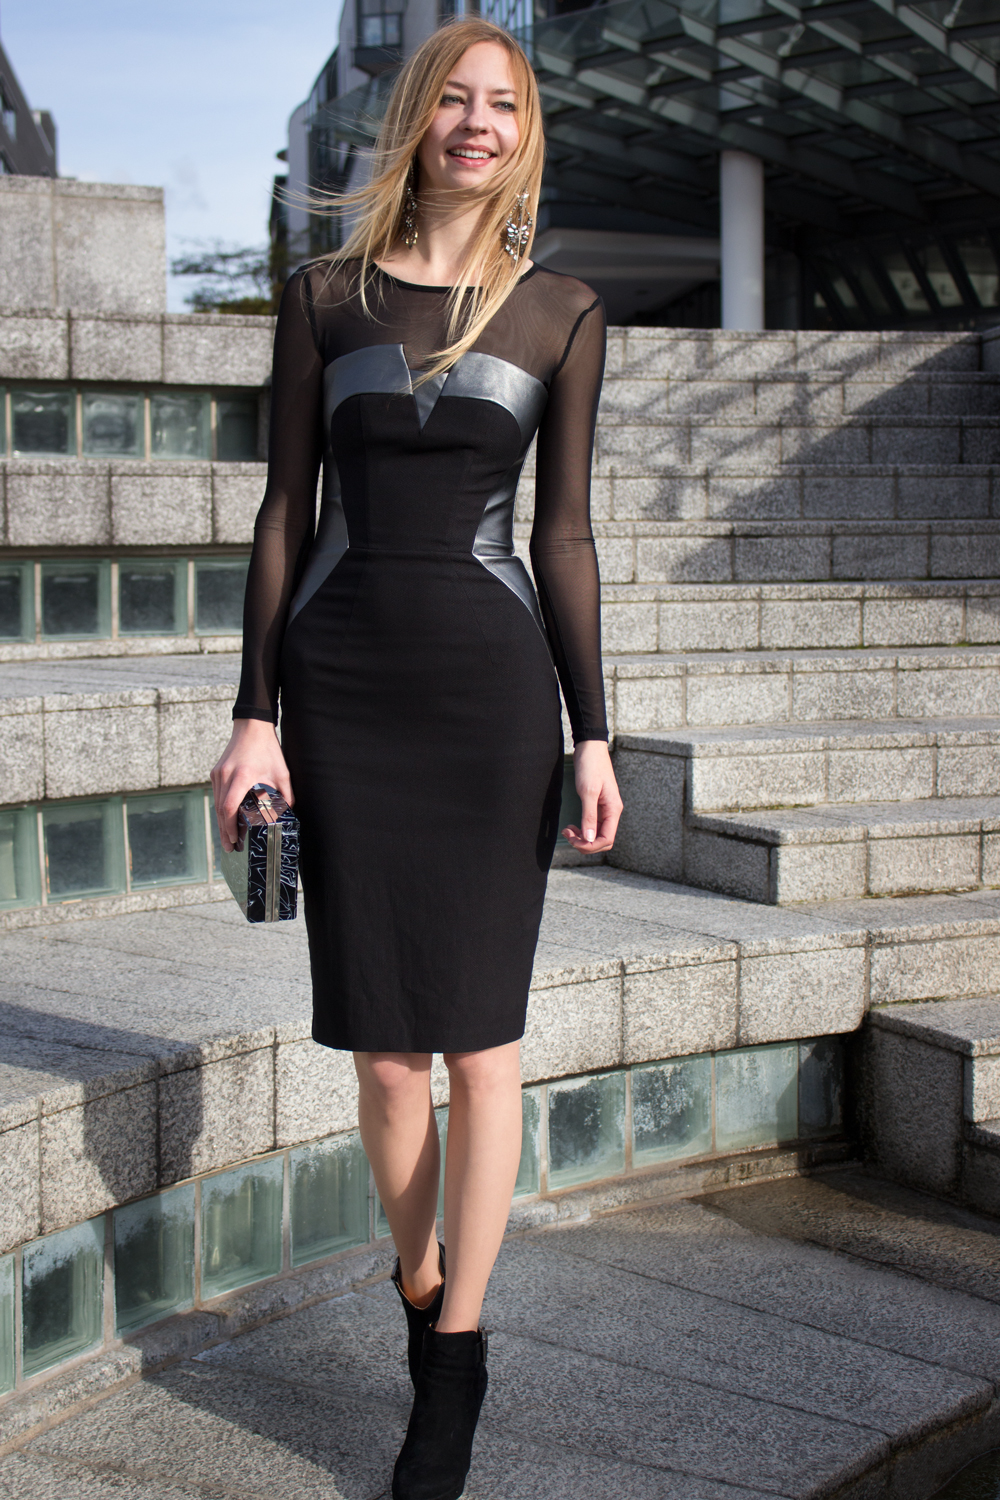 The New (Year\'s Eve) Dress by Hybrid – How I met my outfit